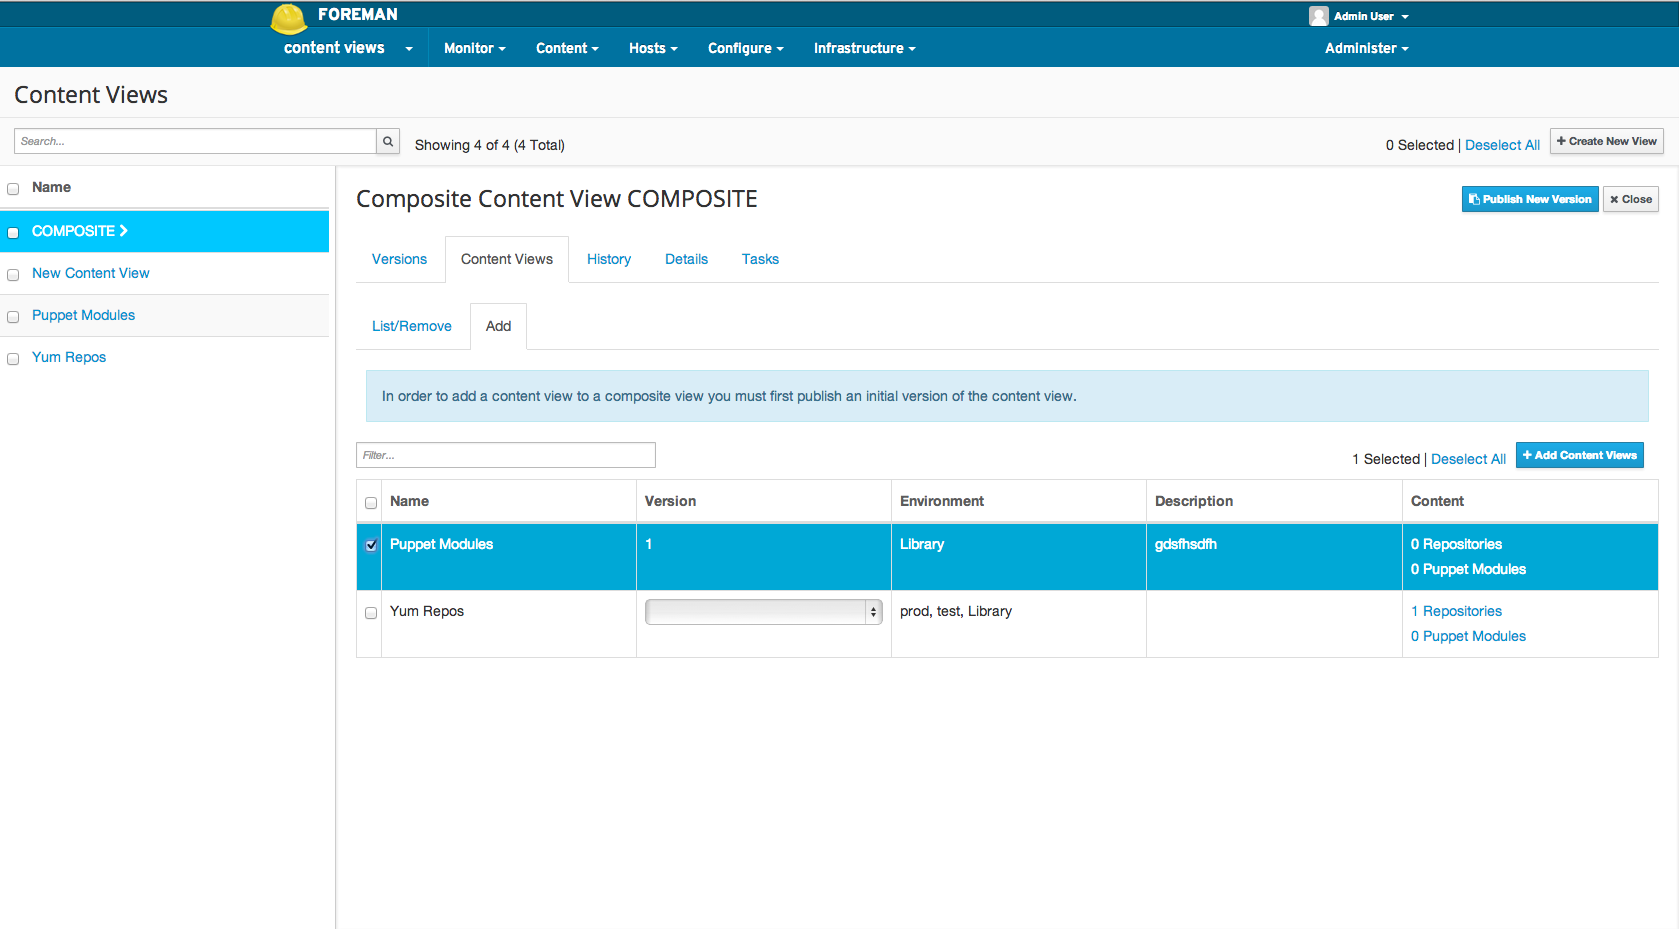 Adding a Content View to a composite Content View 4